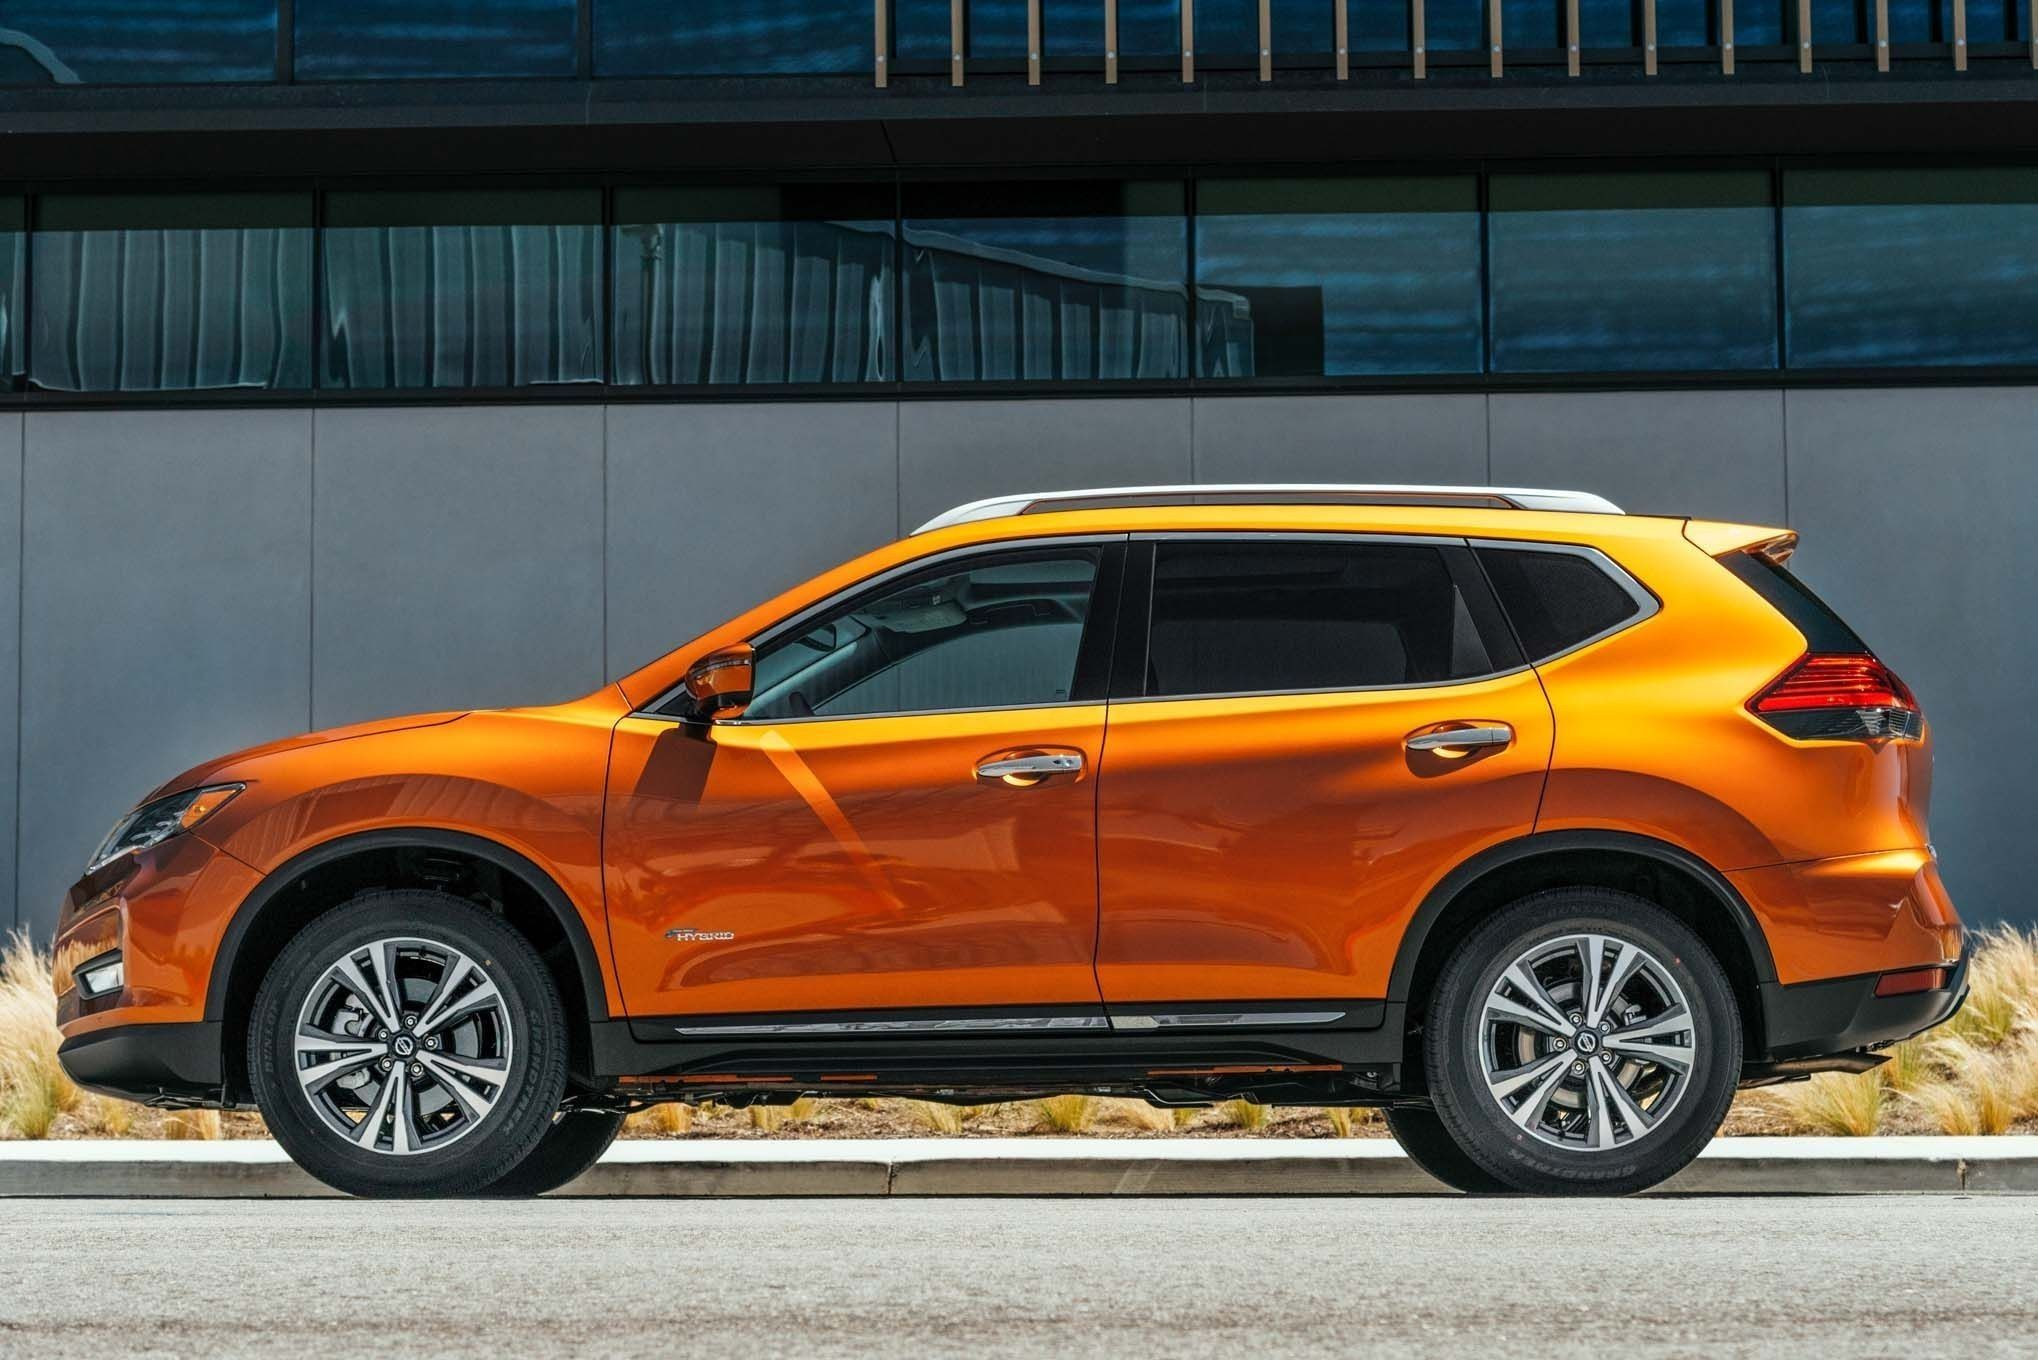 2019 Nissan Rogue Hybrid Picture Nissan Rogue Nissan New Suv